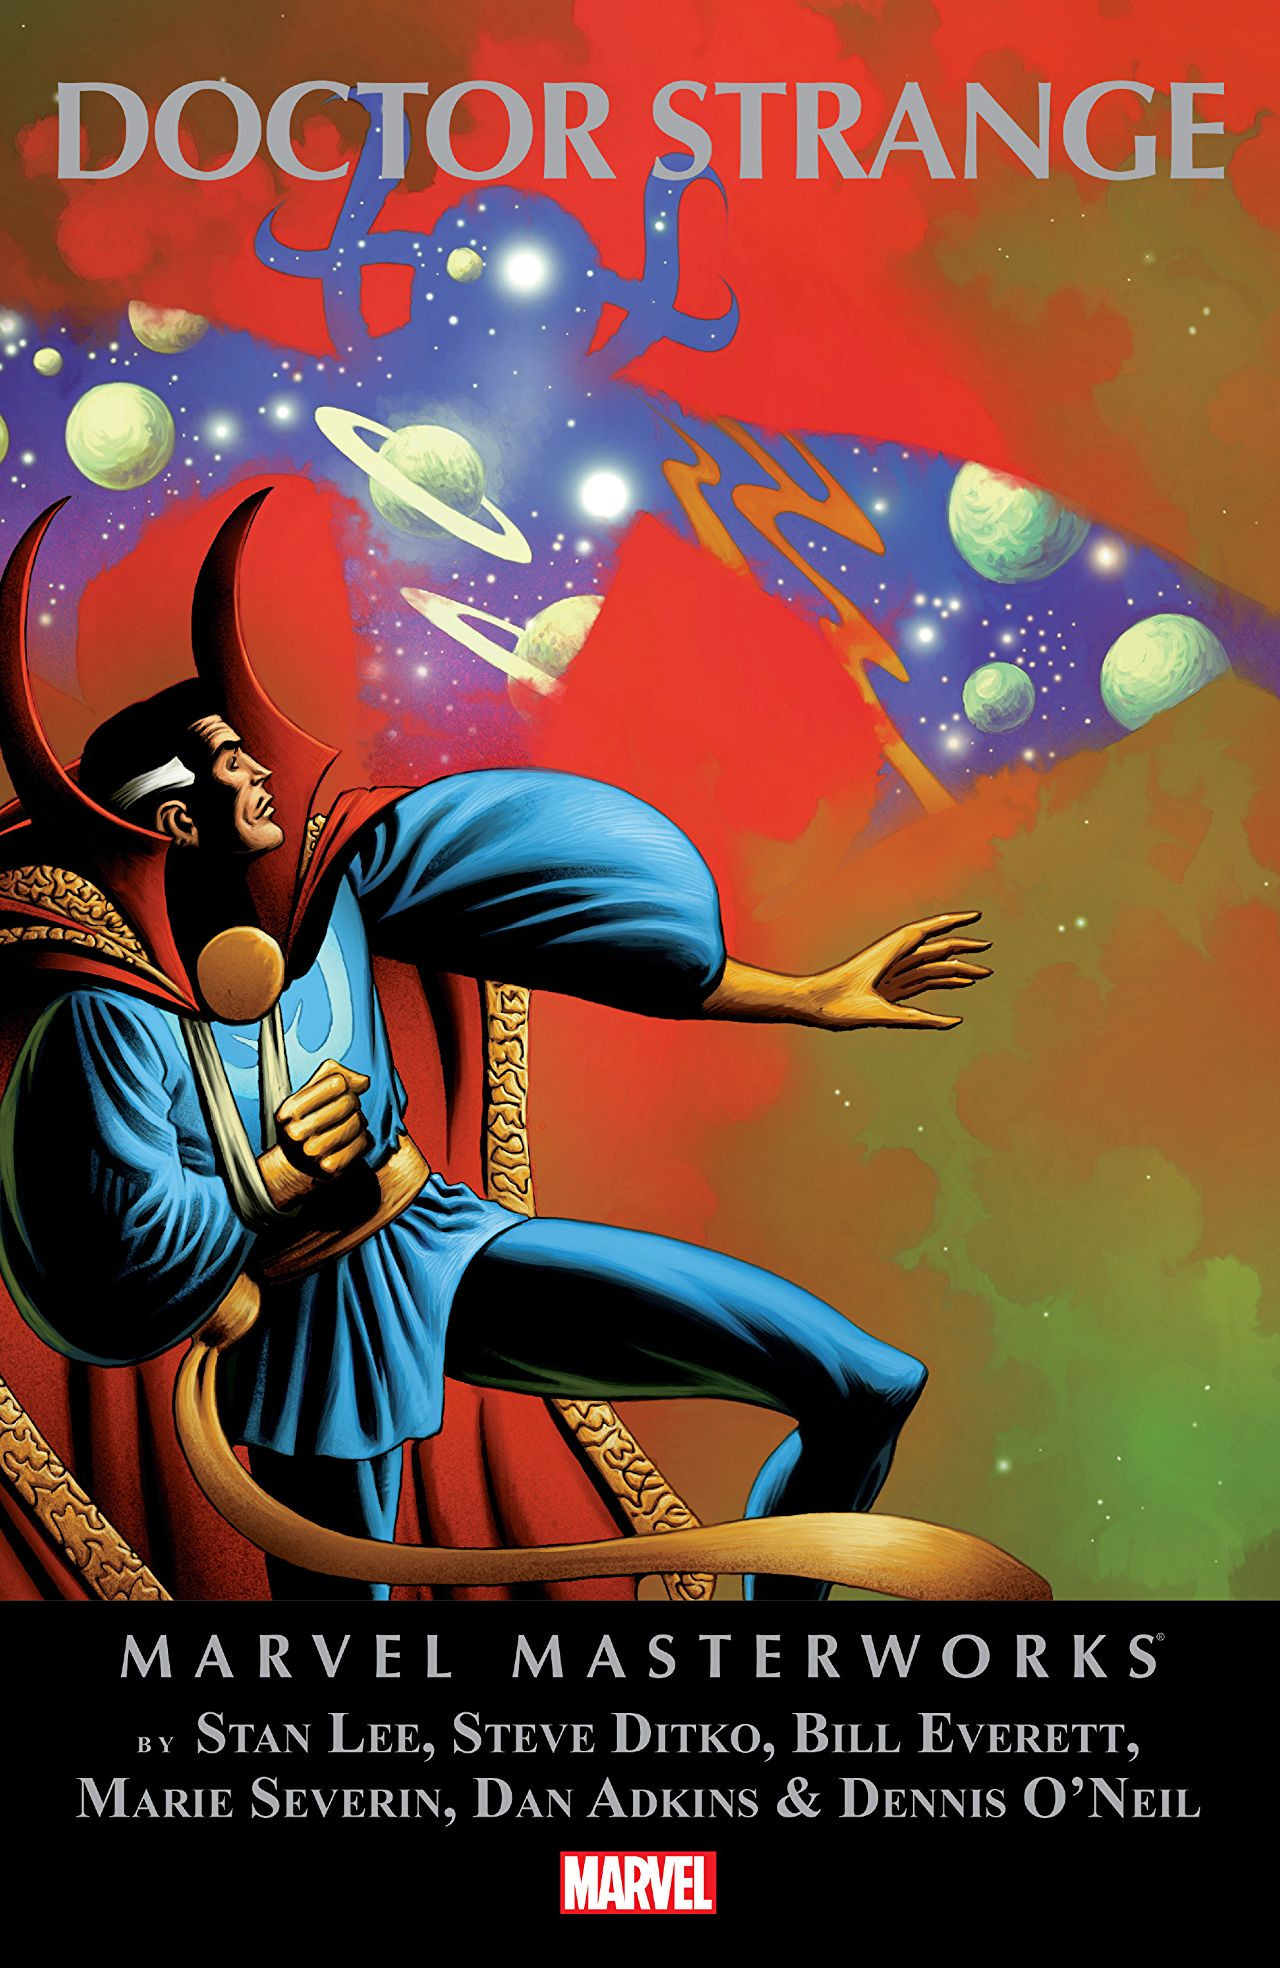 Marvel Masterworks: Doctor Strange Vol 1 2